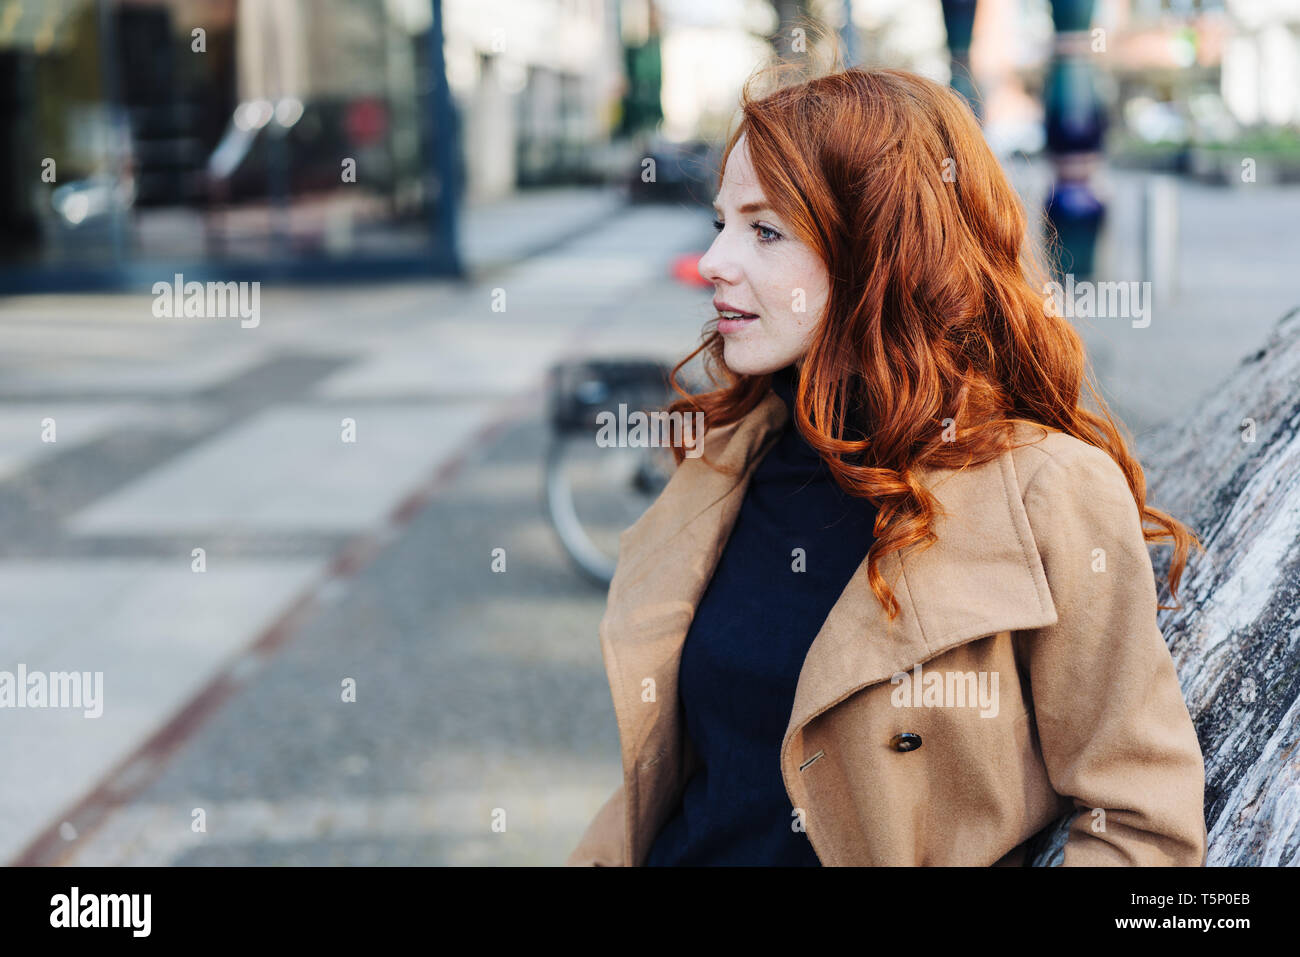 Thoughtful stylish young woman with tousled long red hair standing in a city street in a brown trench coat looking to the side with interest - Stock Image